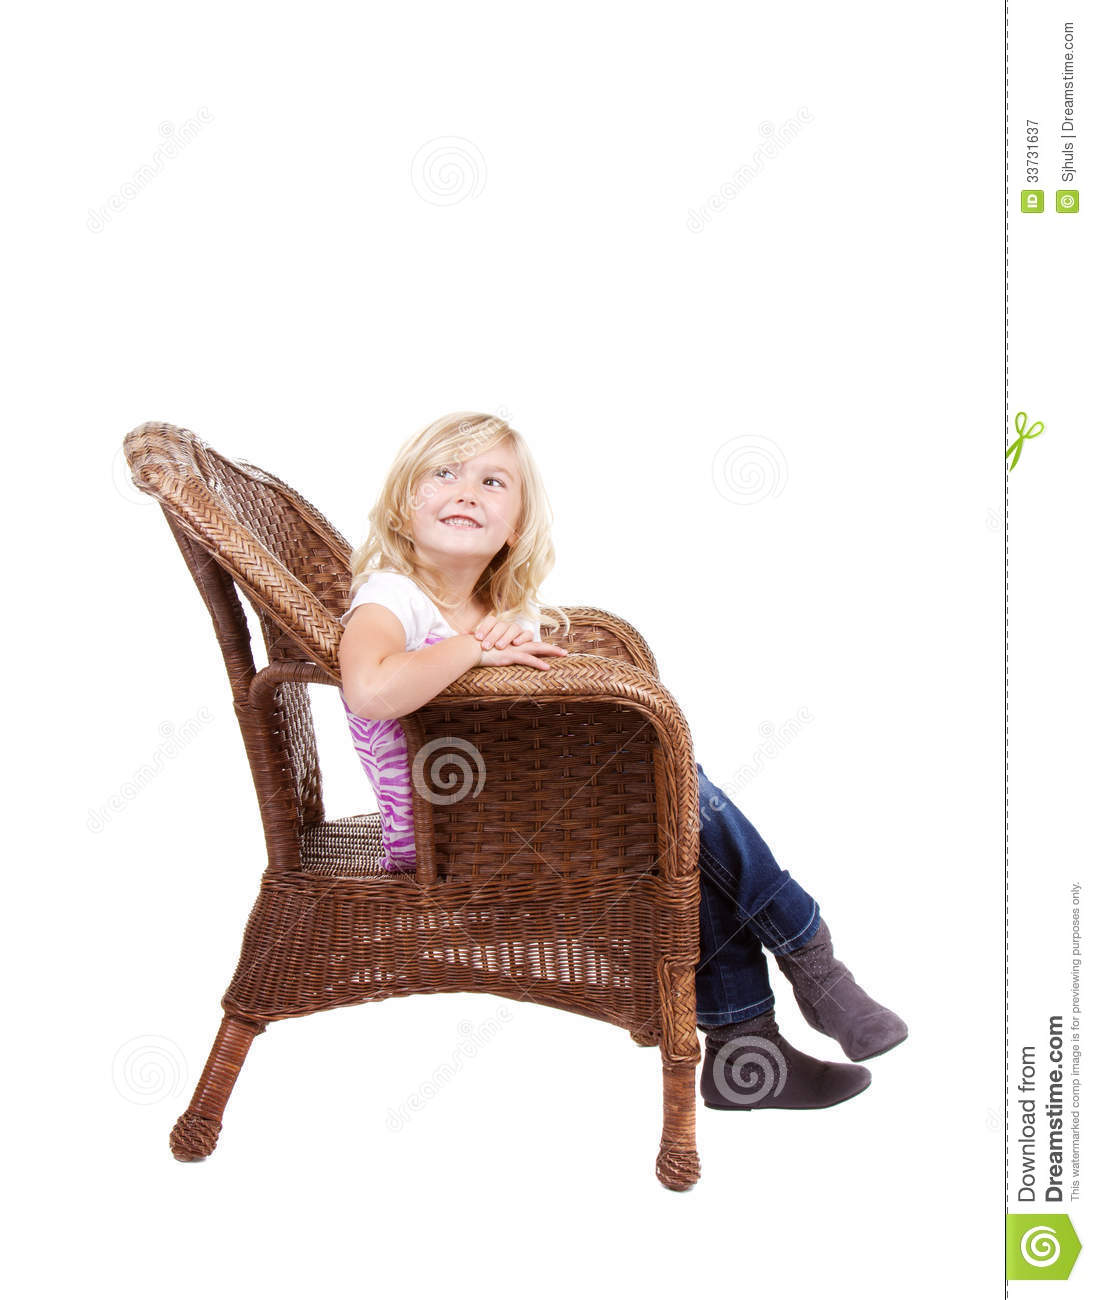 little girl chairs gaming chair steel frame sitting on a royalty free stock